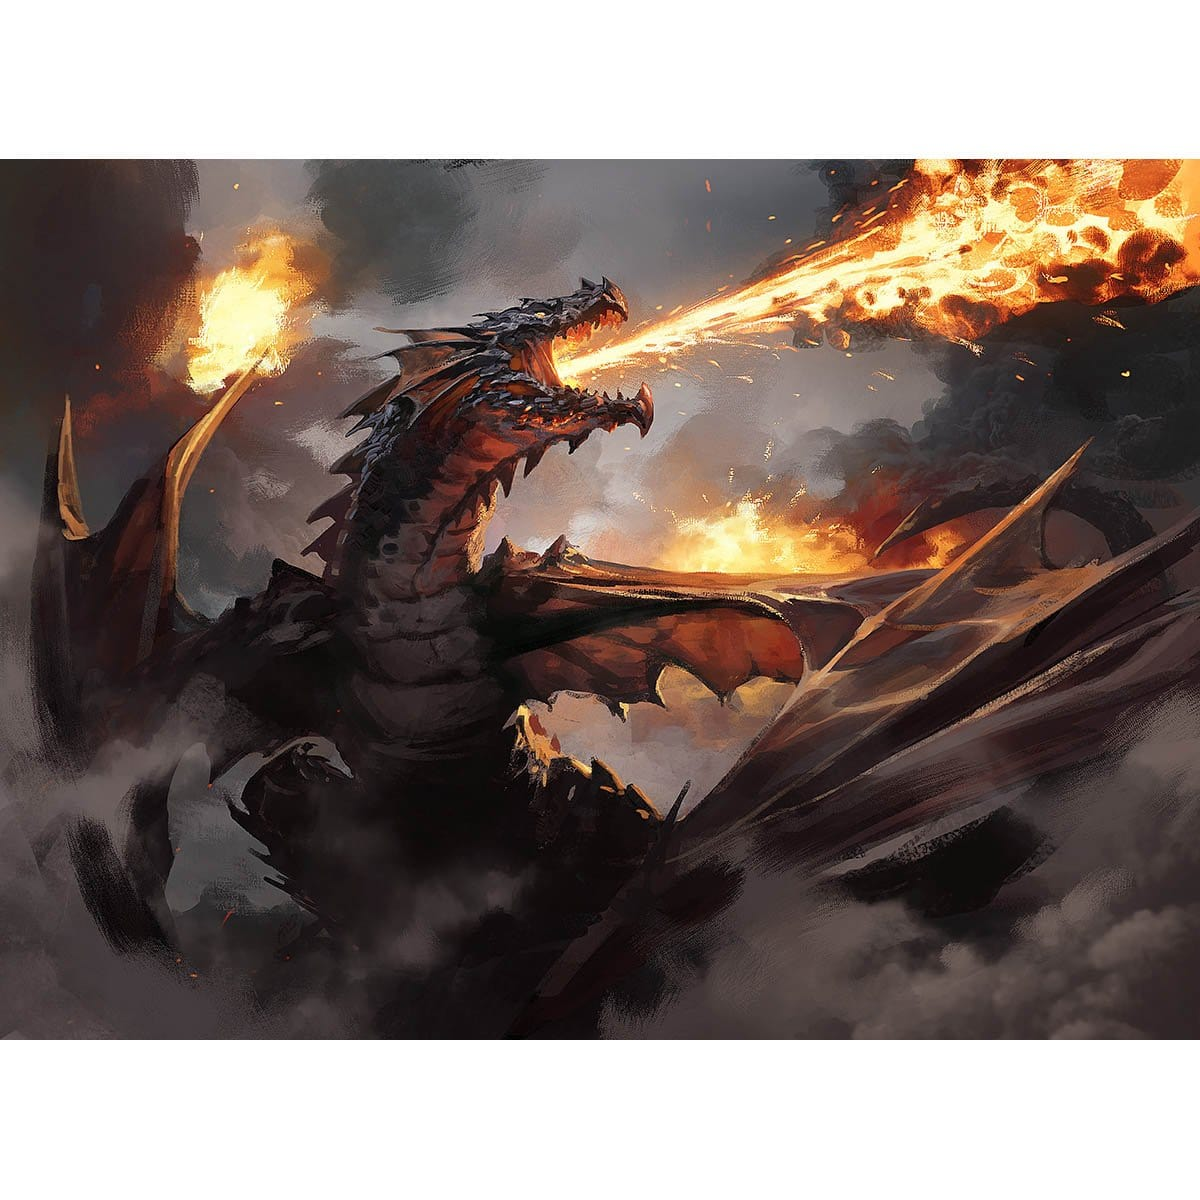 Drakuseth, Maw of Flames Print - Print - Original Magic Art - Accessories for Magic the Gathering and other card games